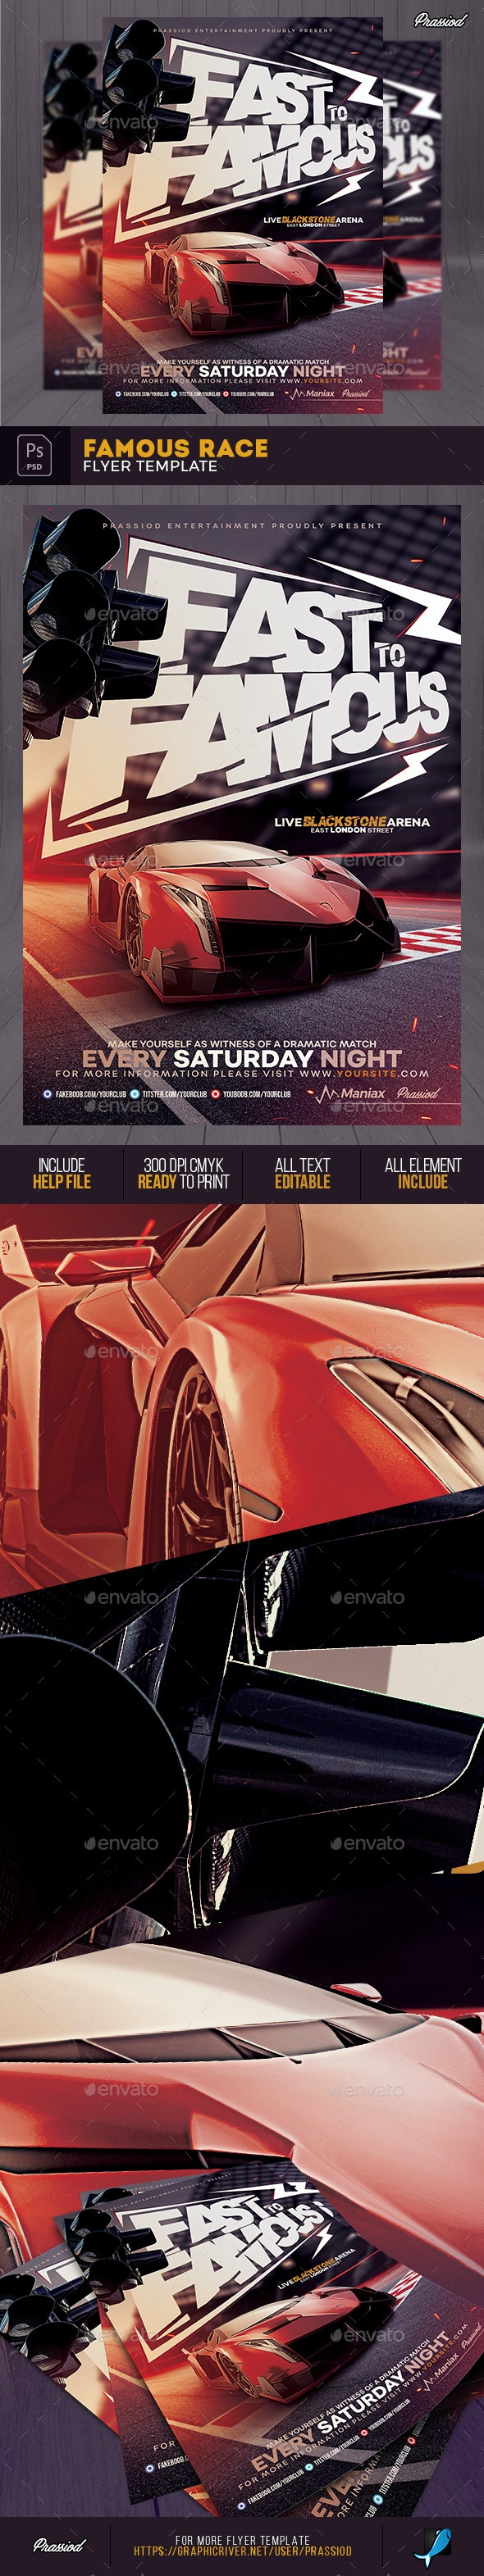 Famous Race Flyer Template - Sports Events